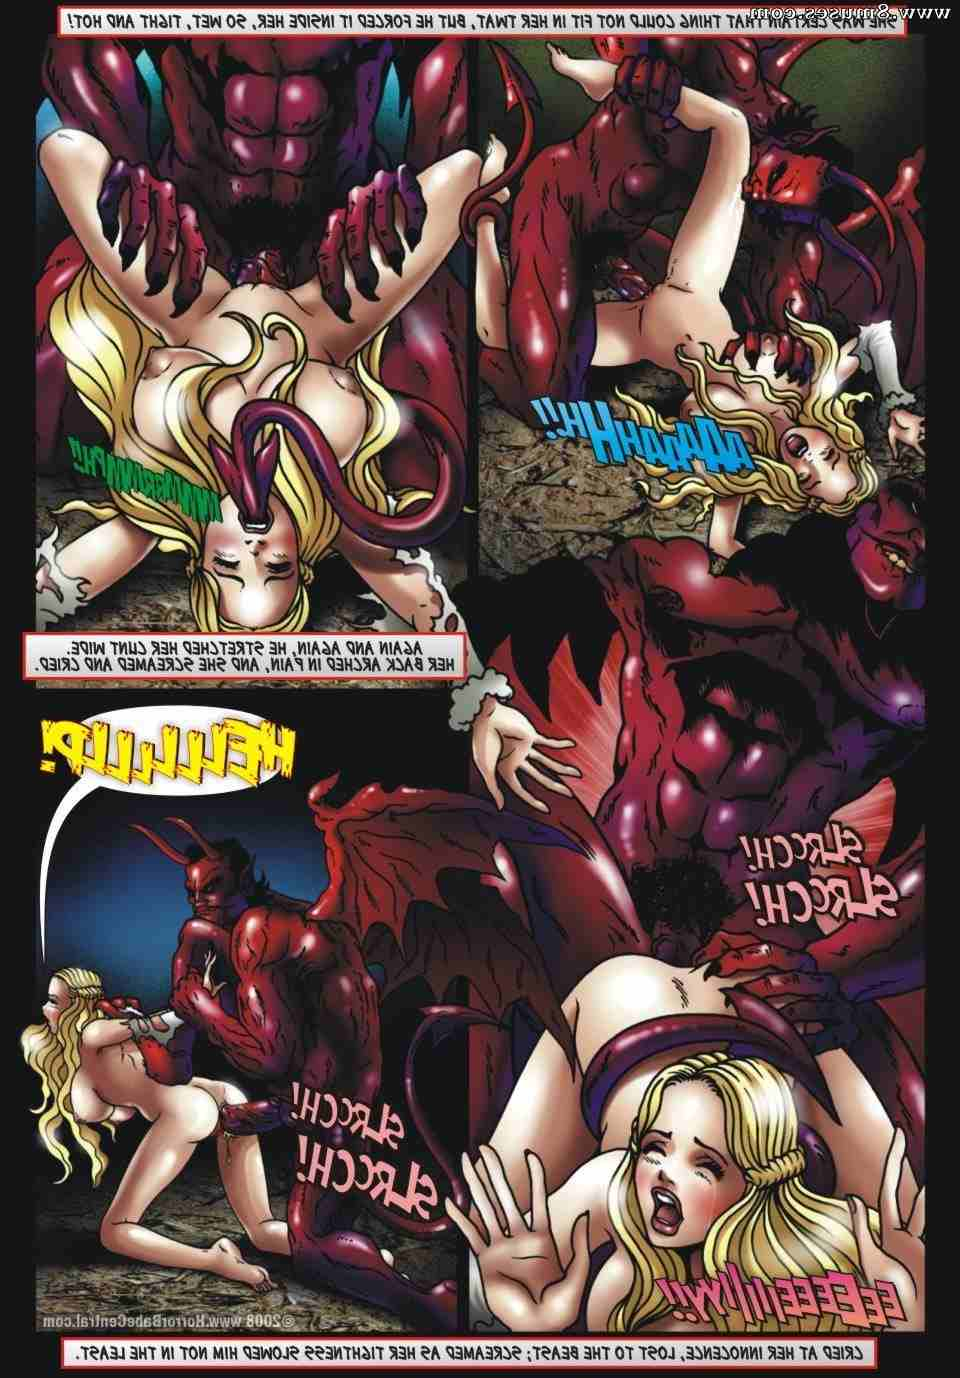 Central-Comics/Horror-Babe-Central/Fable-of-Fright Fable_of_Fright__8muses_-_Sex_and_Porn_Comics_83.jpg